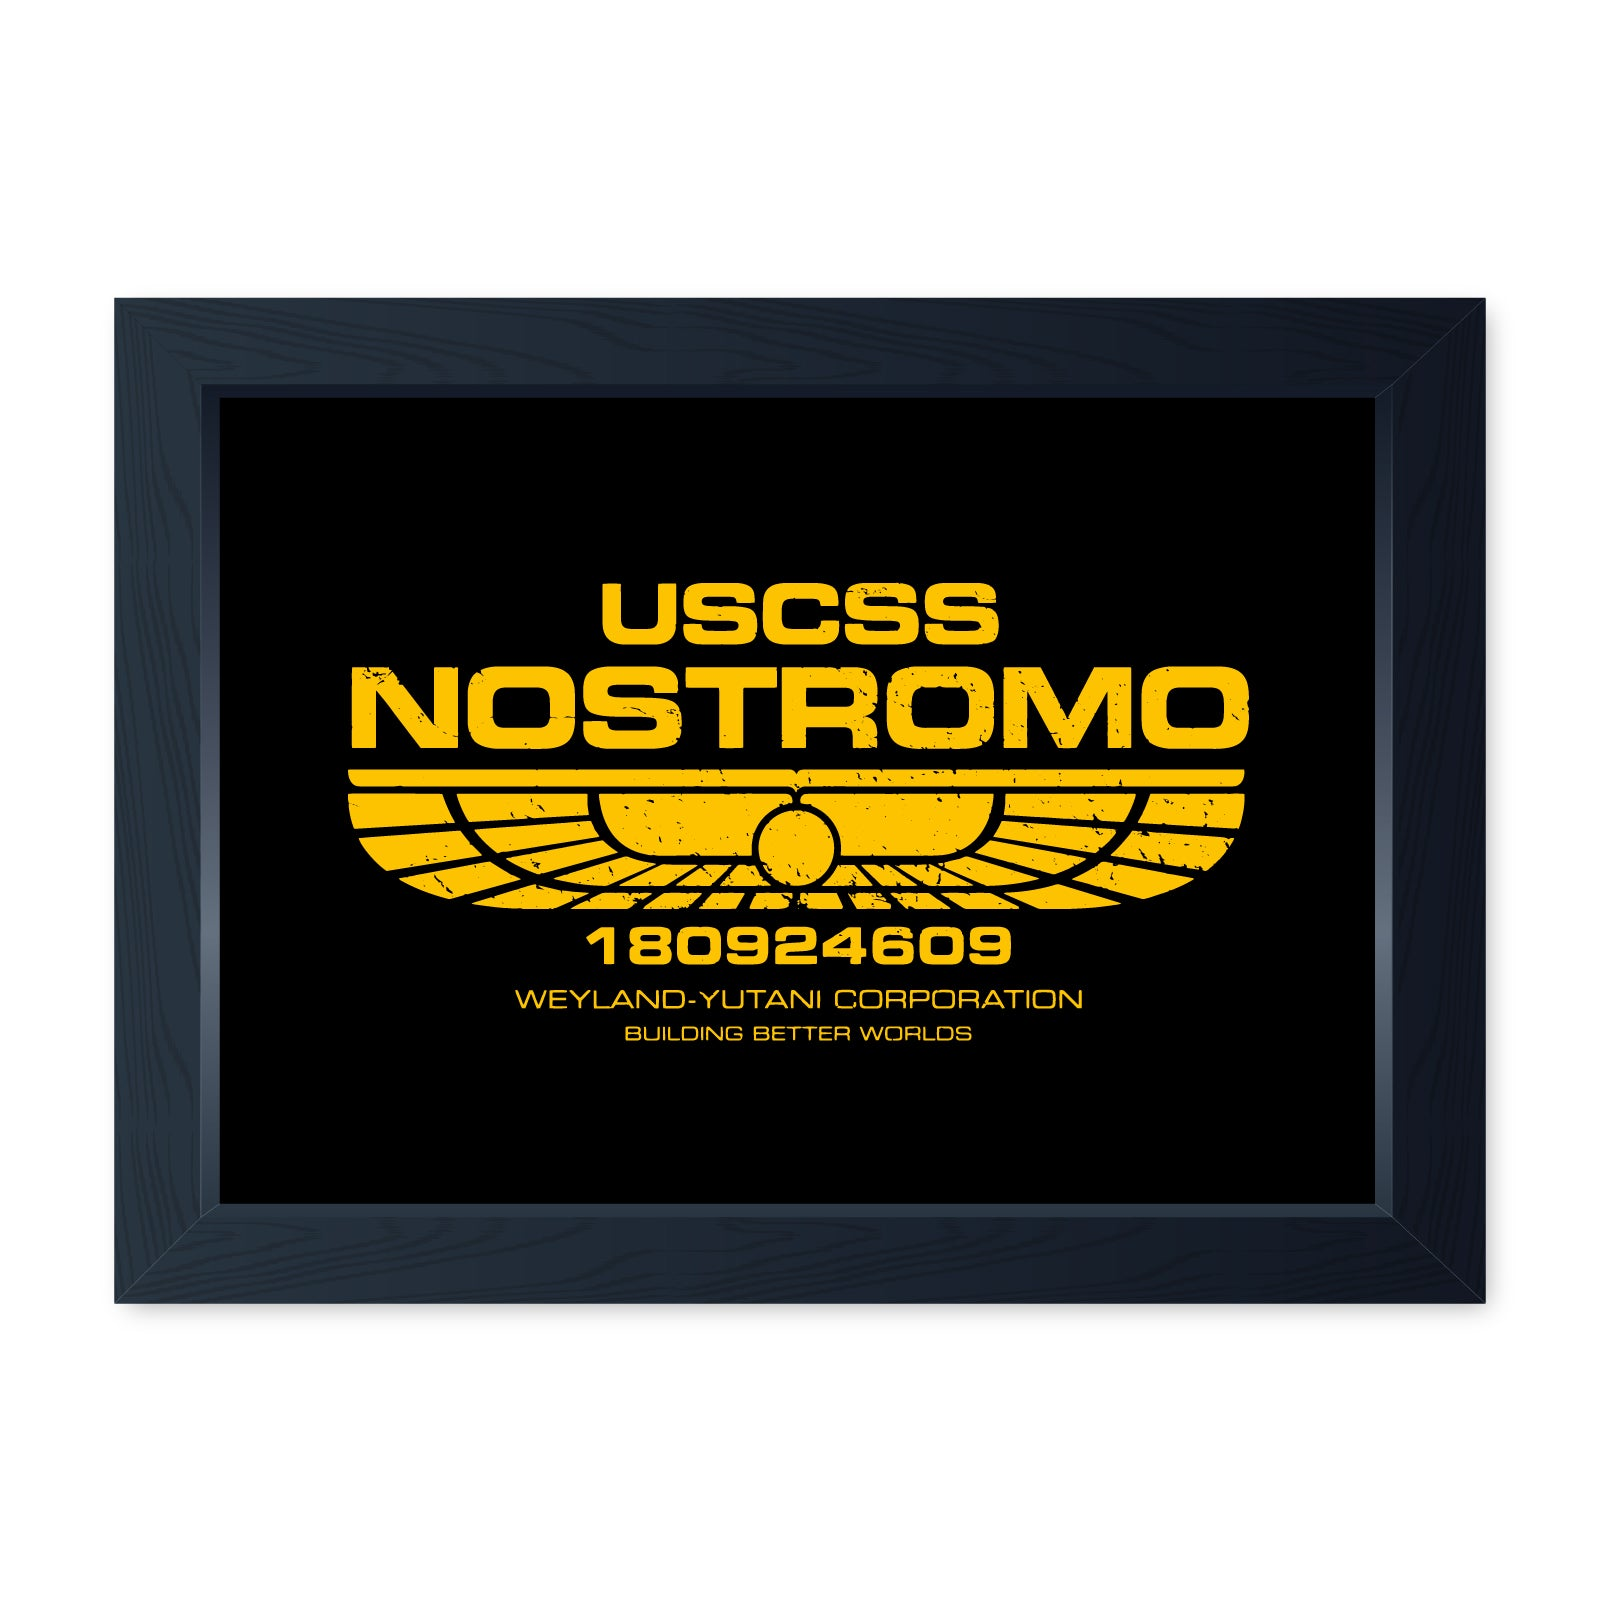 USCSS Nostromo, Quality Framed Movie Print - Kitchen Bathroom Man Cave Art